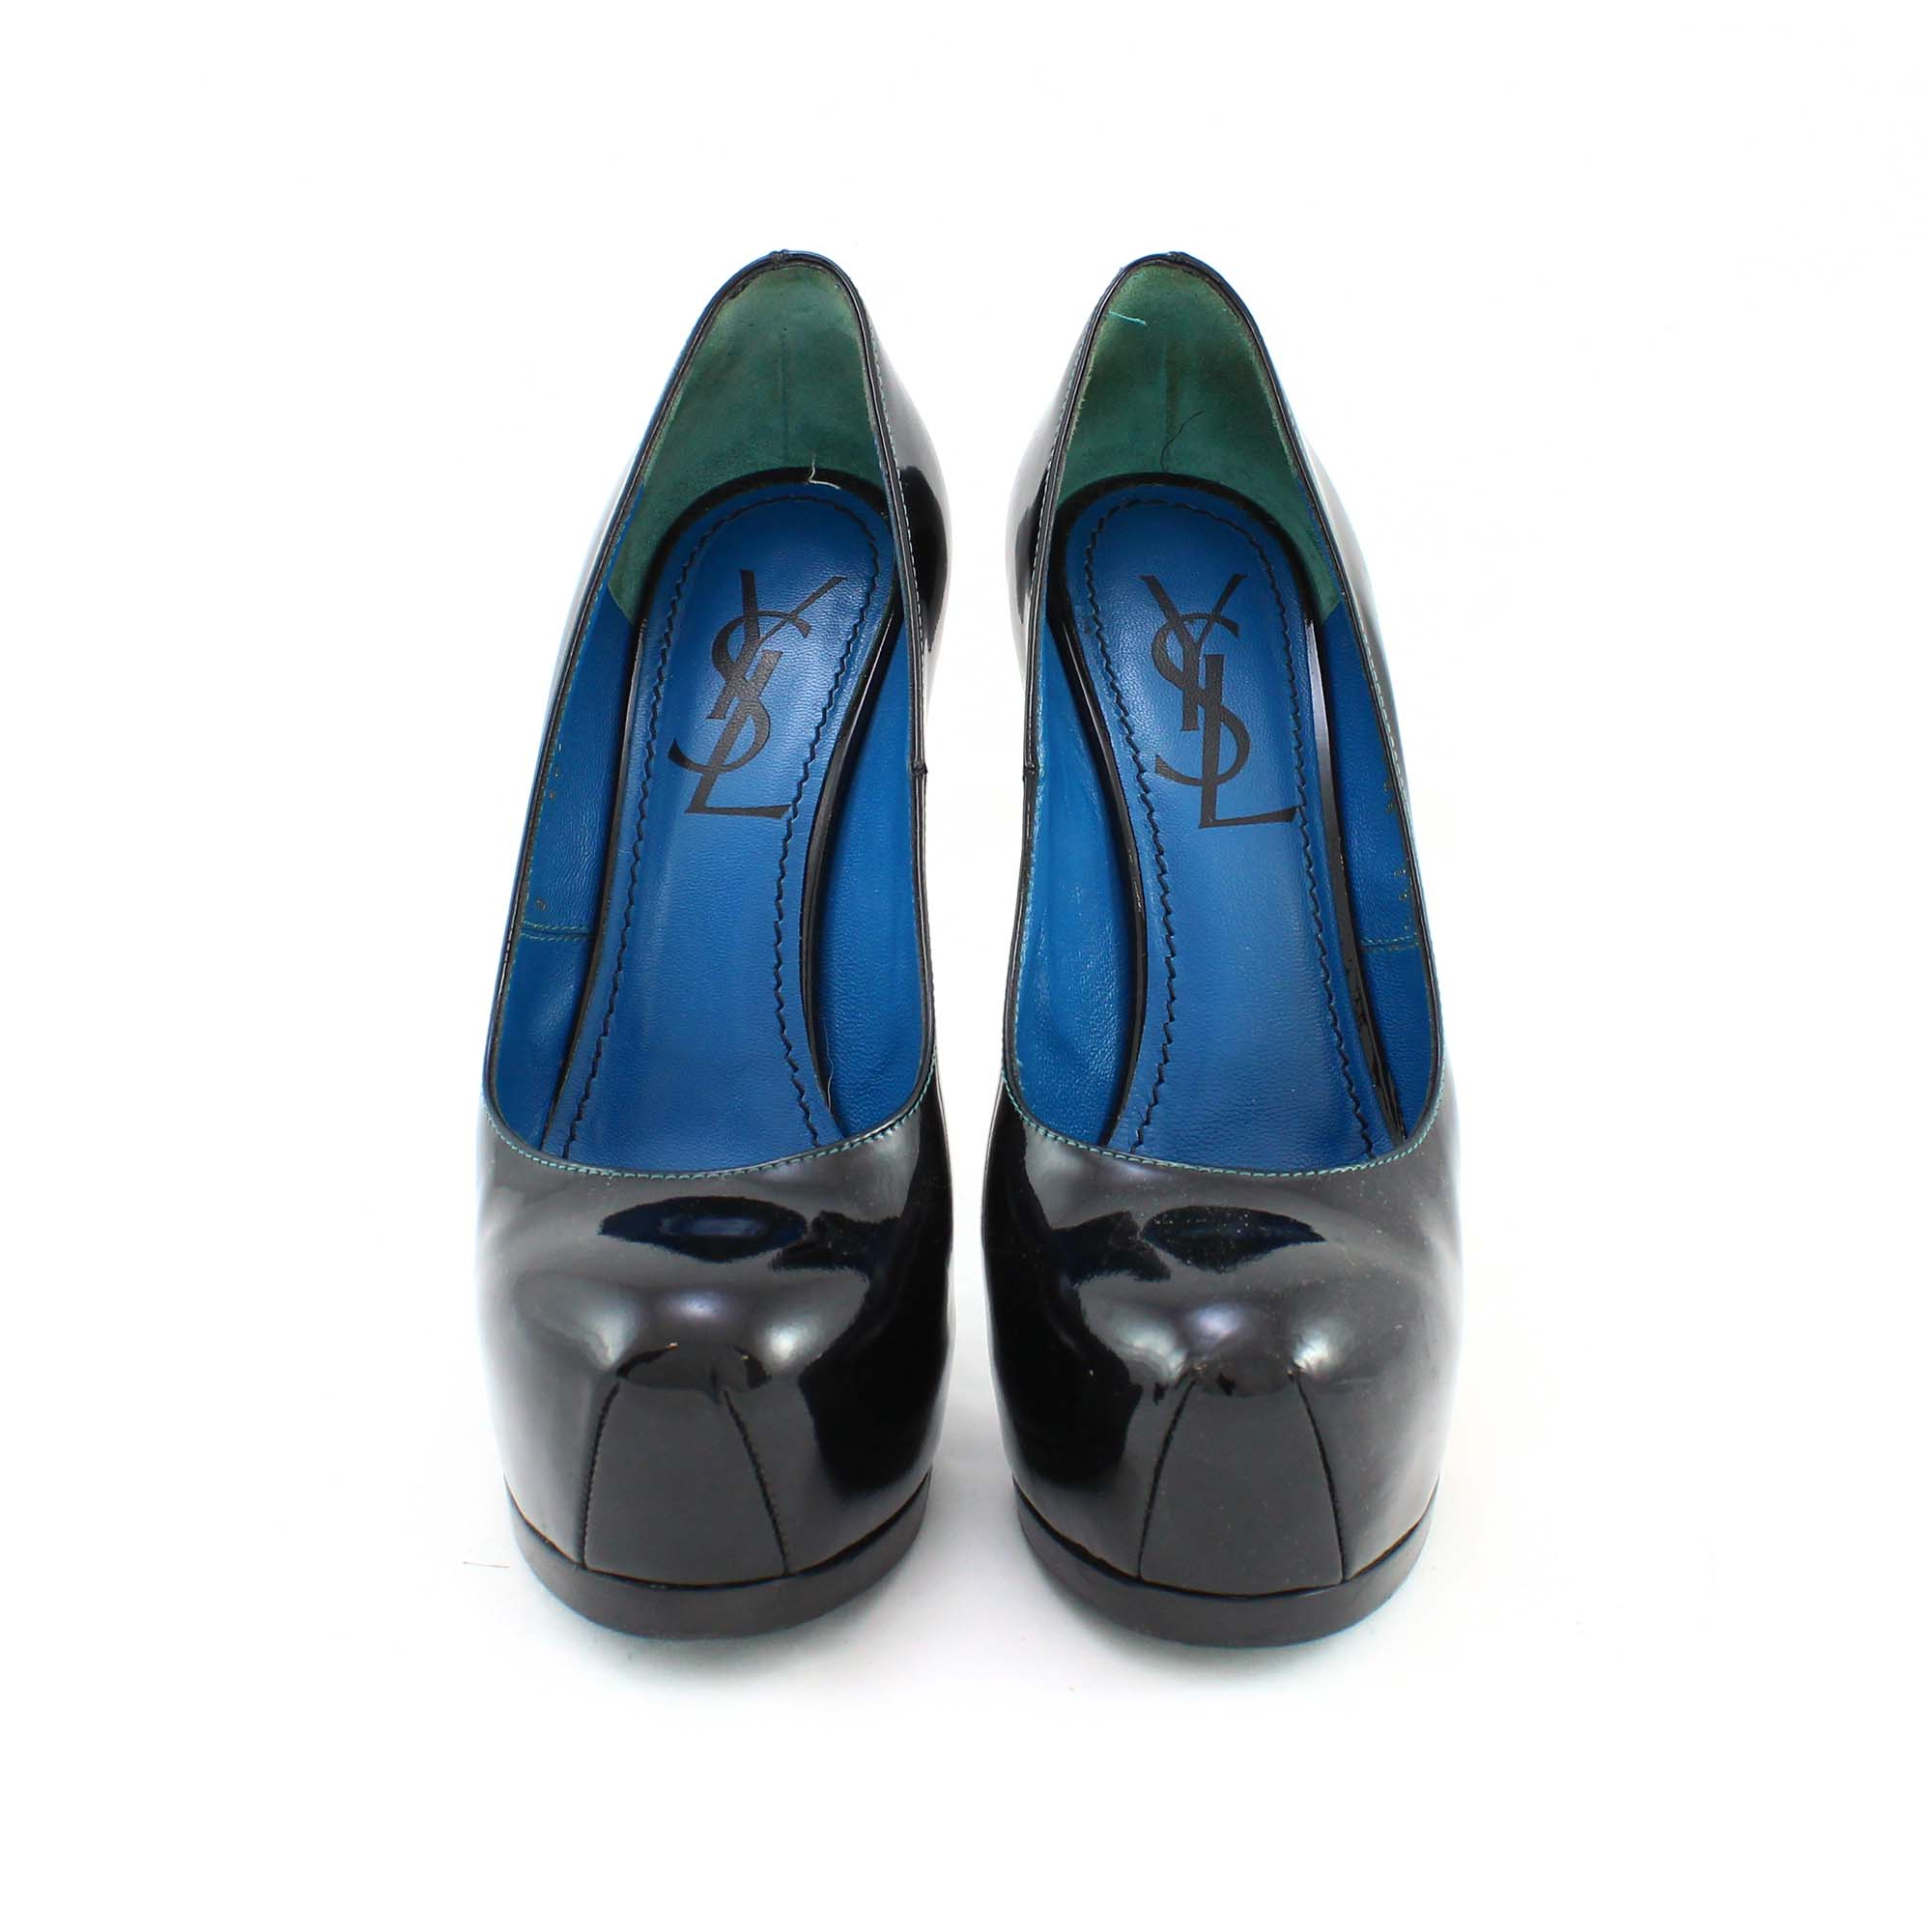 ab089c25fec Authentic Second Hand Yves Saint Laurent Tribute Pump with Blue Sole  (PSS-003-00004) - THE FIFTH COLLECTION